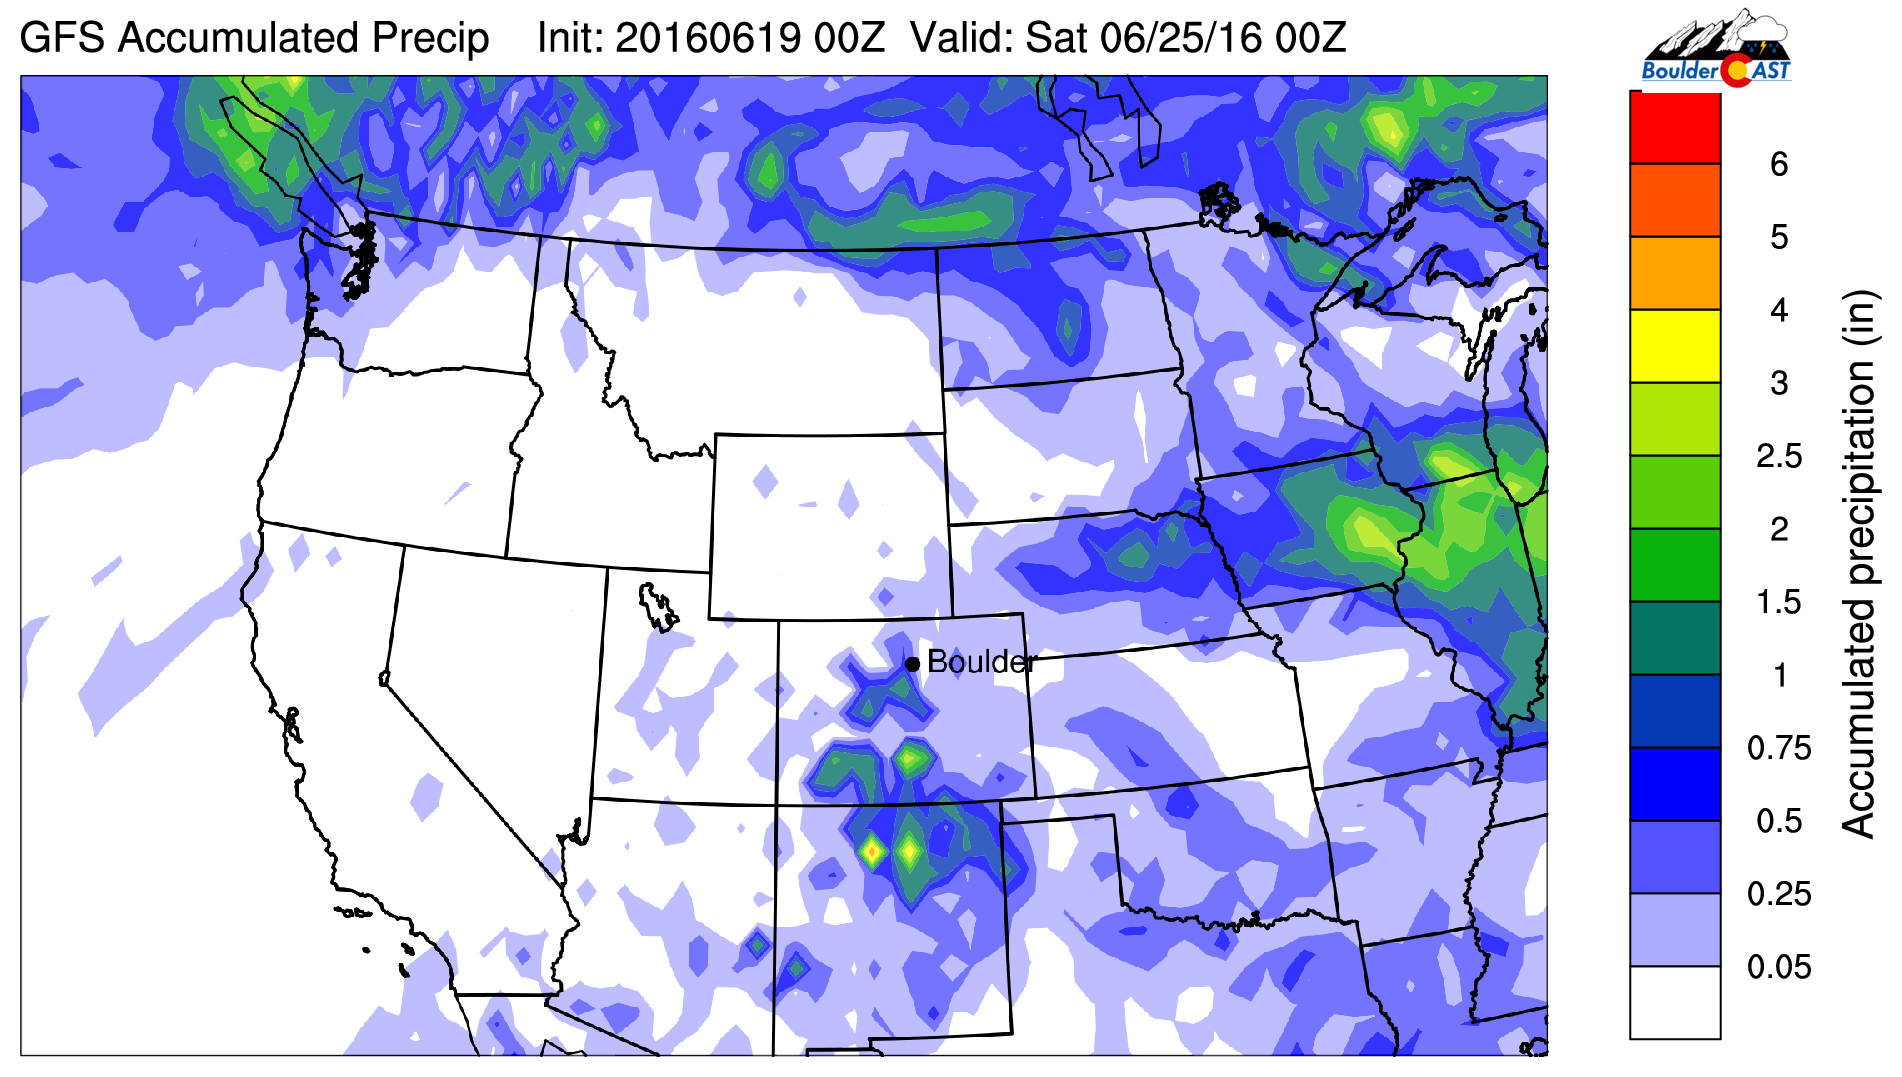 GFS total accumulated precipitation through Friday. Precipitation will mostly be confined to the Mountains